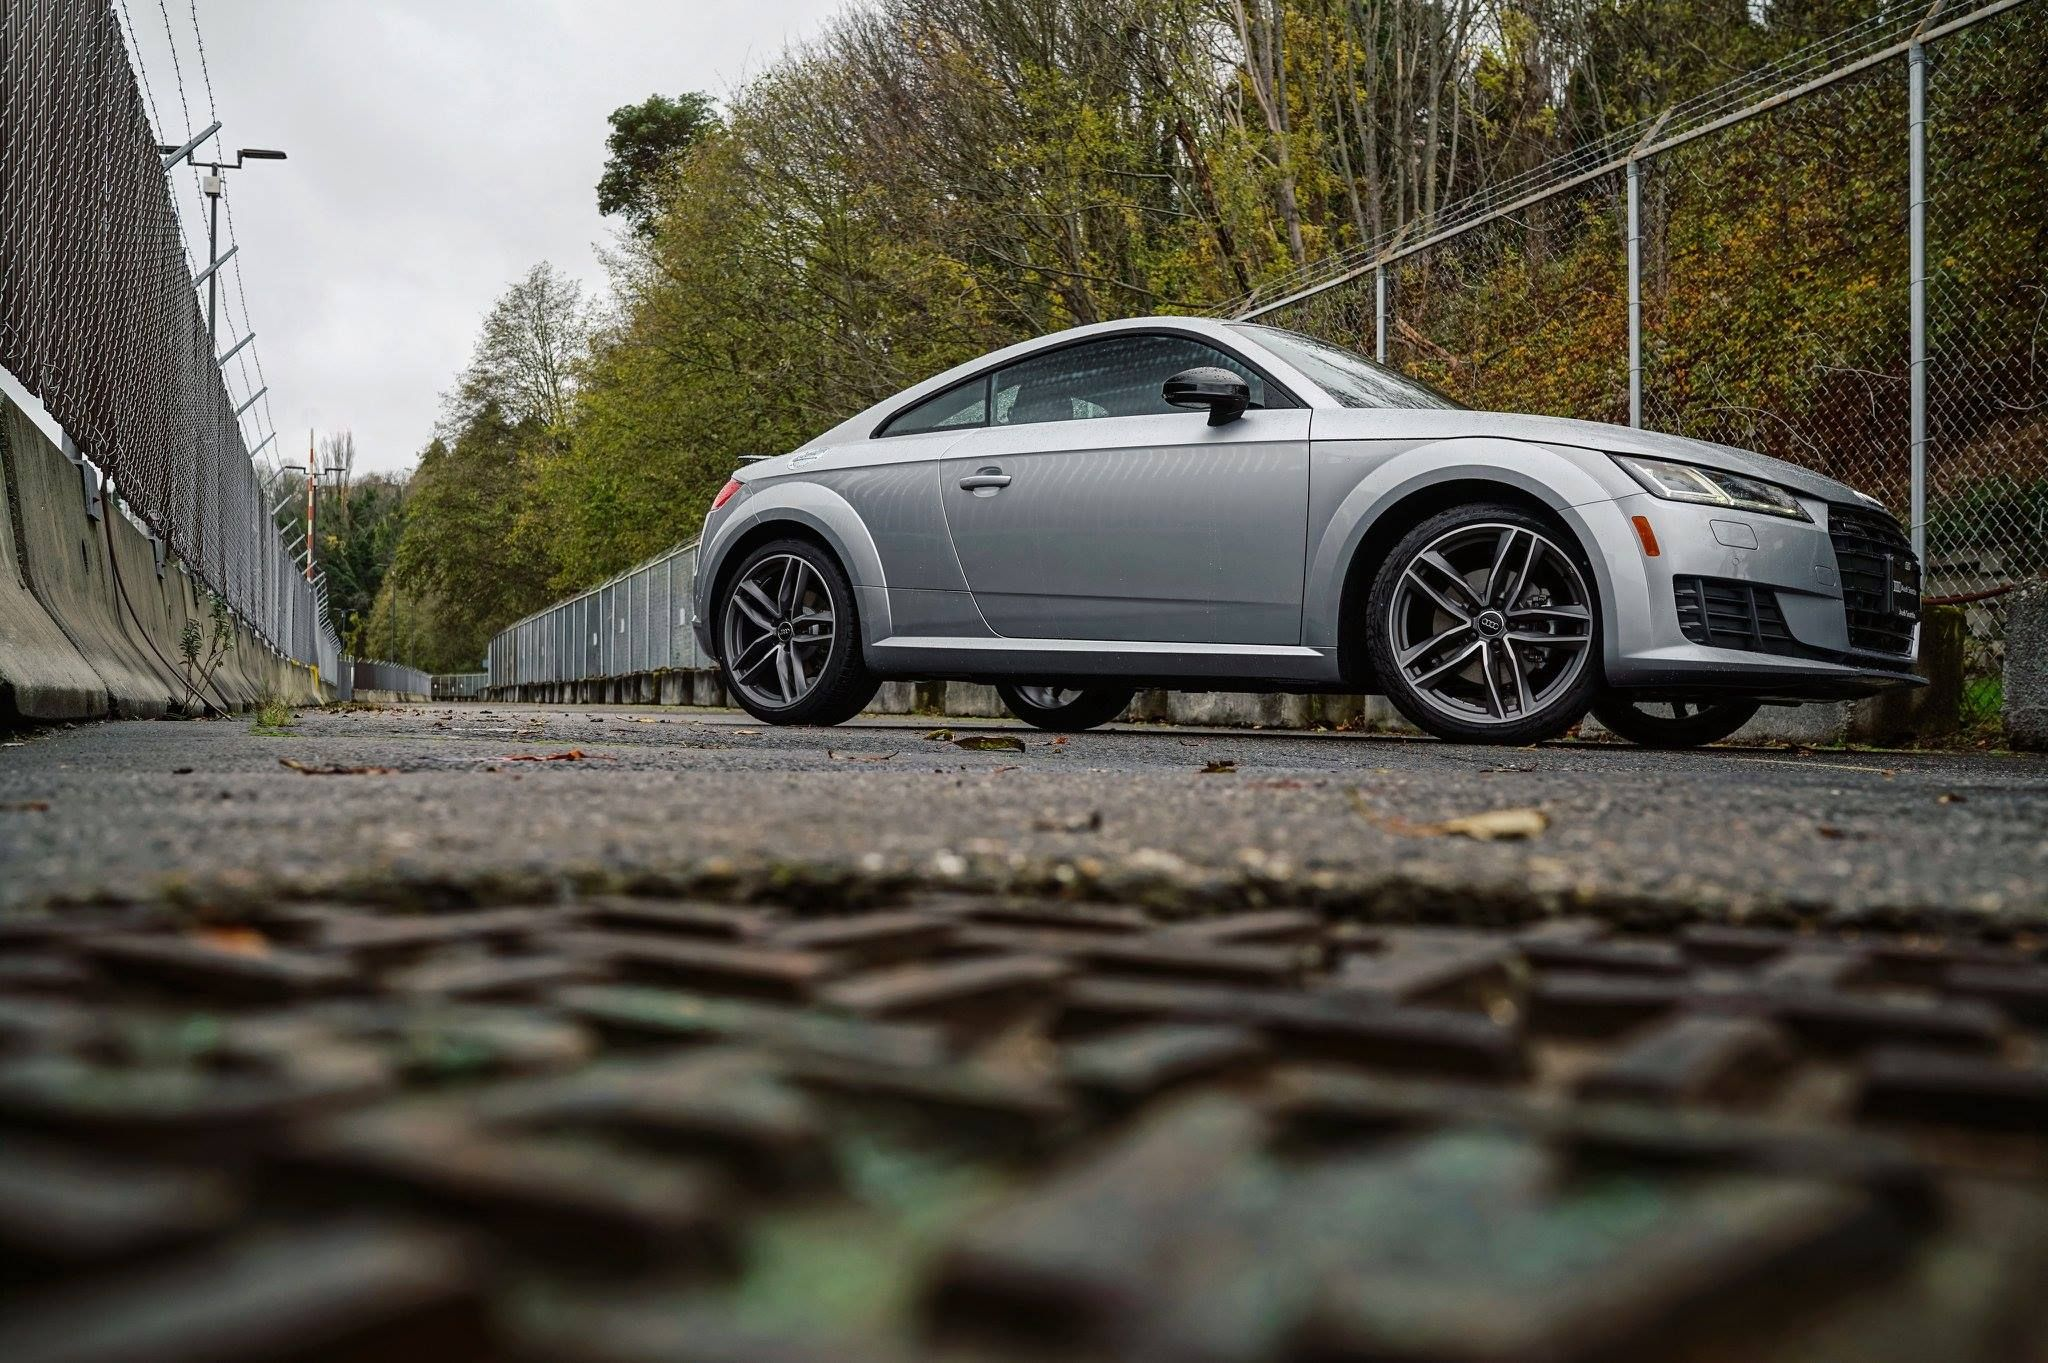 The 2017 TT Coupe is available with the black optics package which